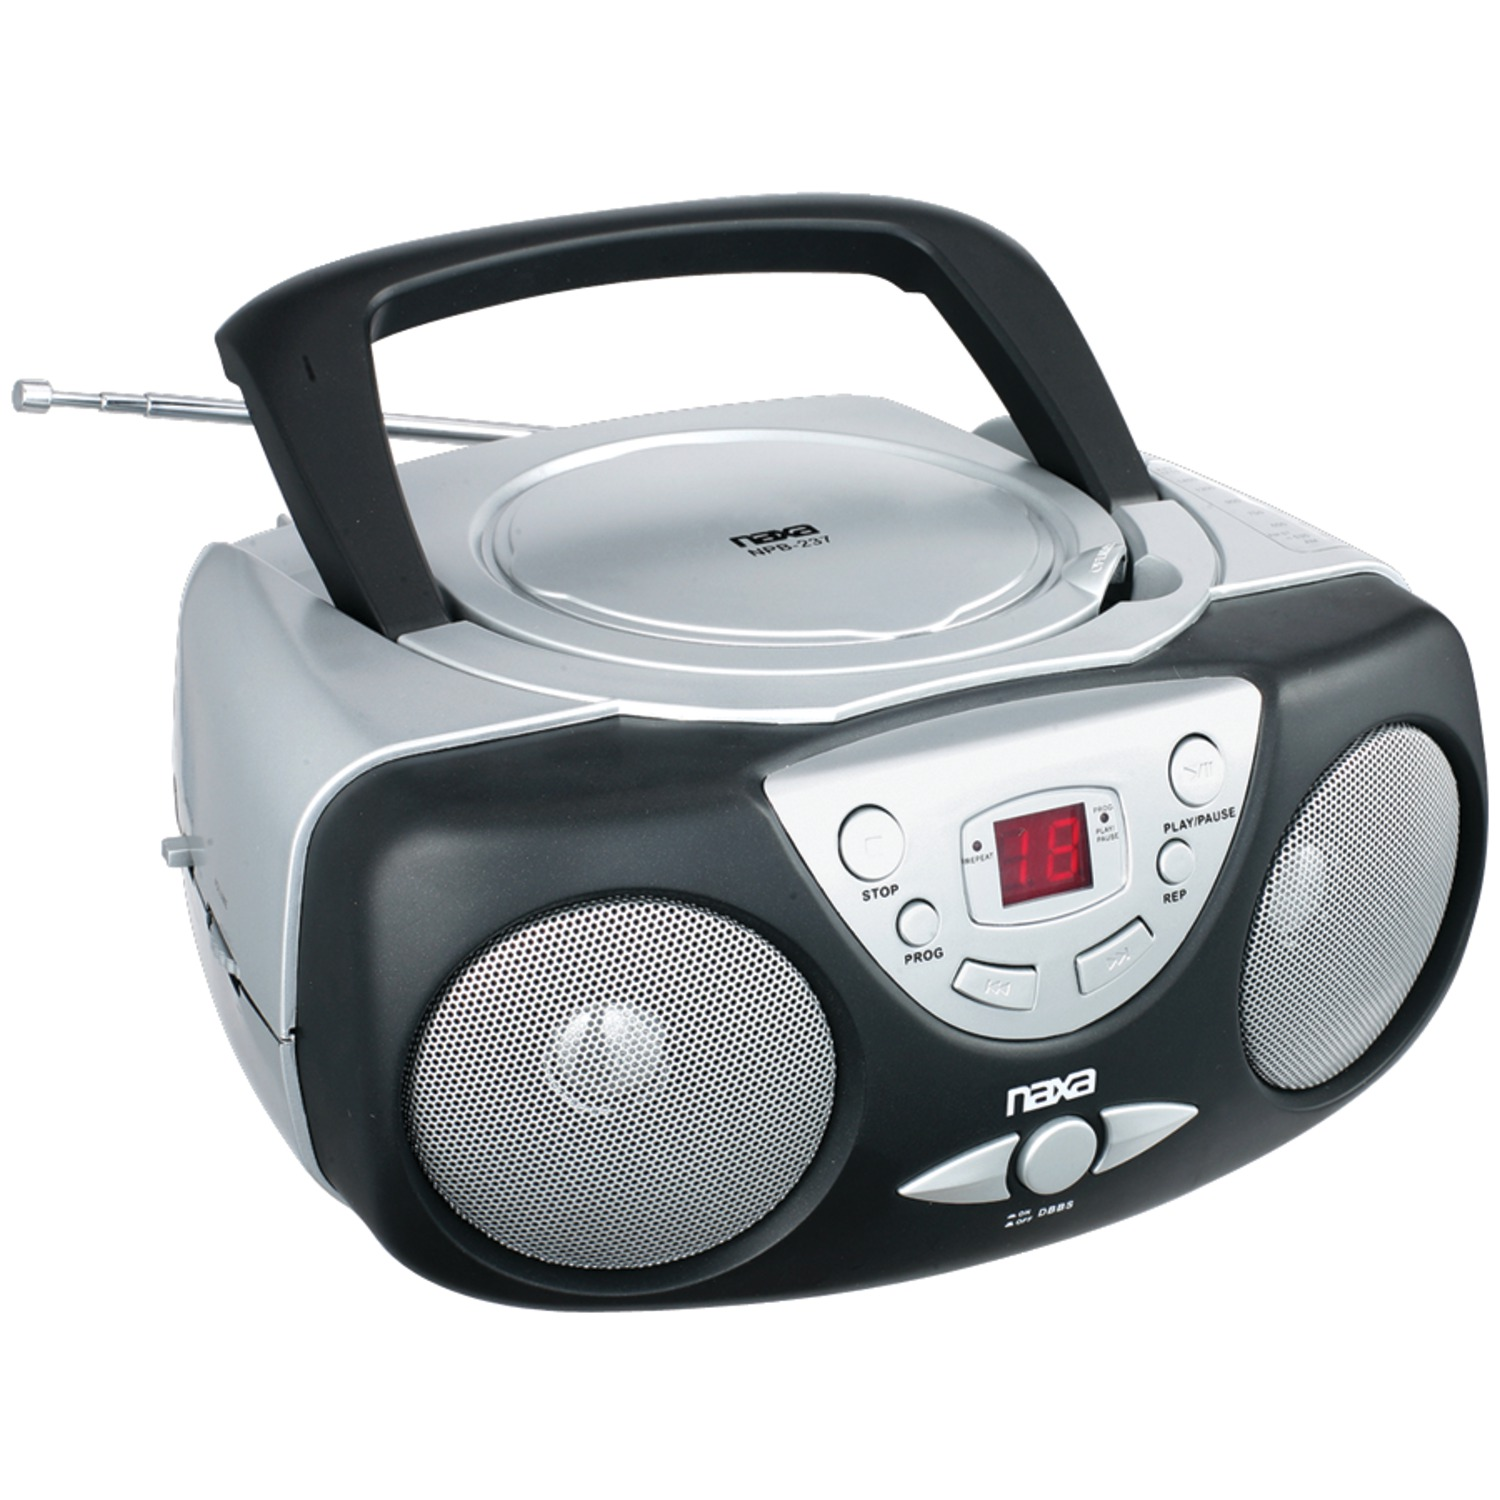 naxa npb237 portable cd player with am fm radio. Black Bedroom Furniture Sets. Home Design Ideas